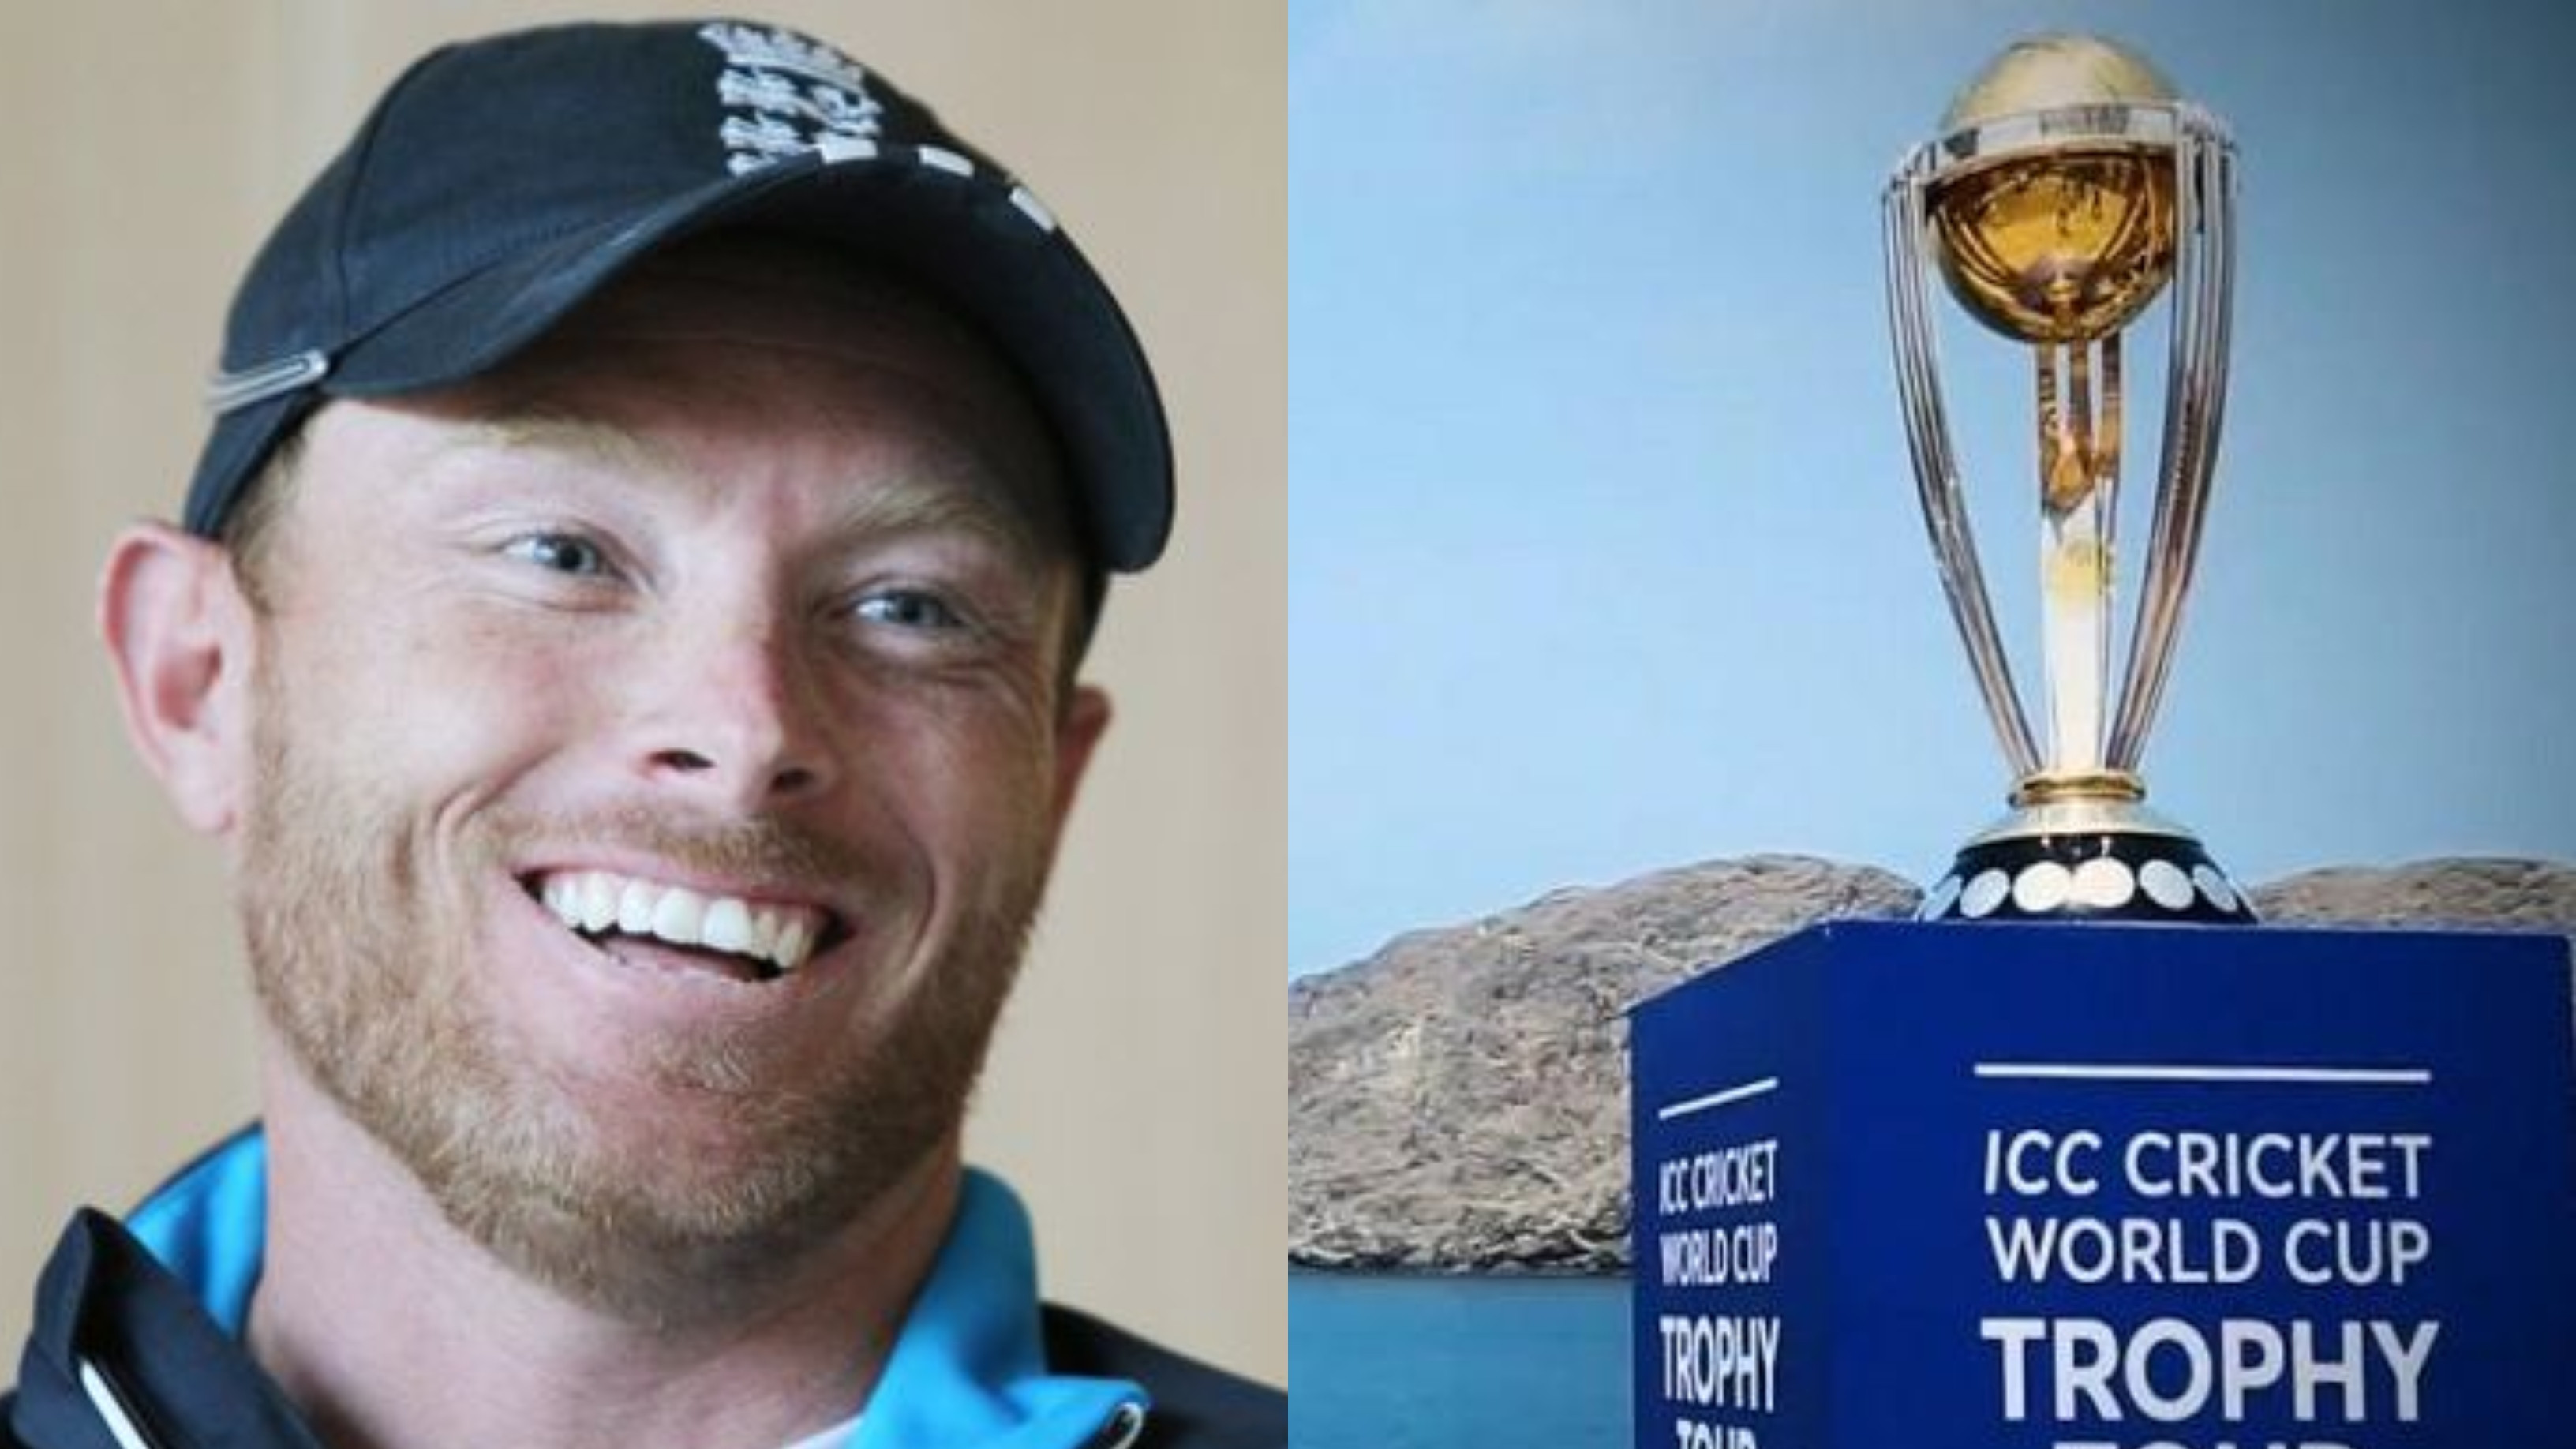 ICC World Cup 2019: Ian Bell picks his top contenders for the title